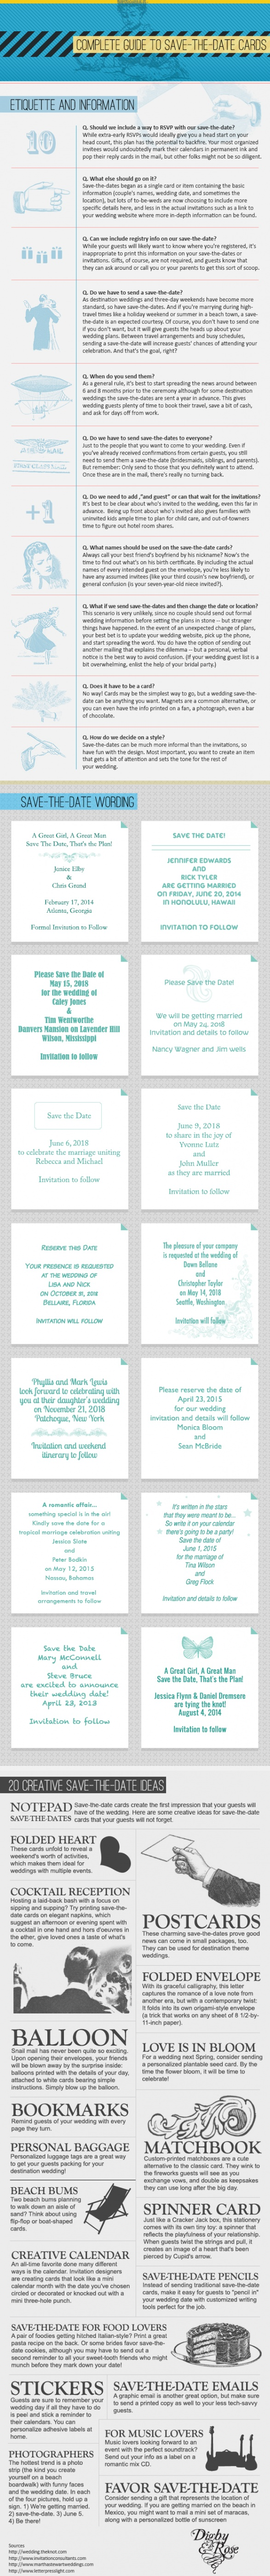 ** Complete Guide To Save-The-Date Cards